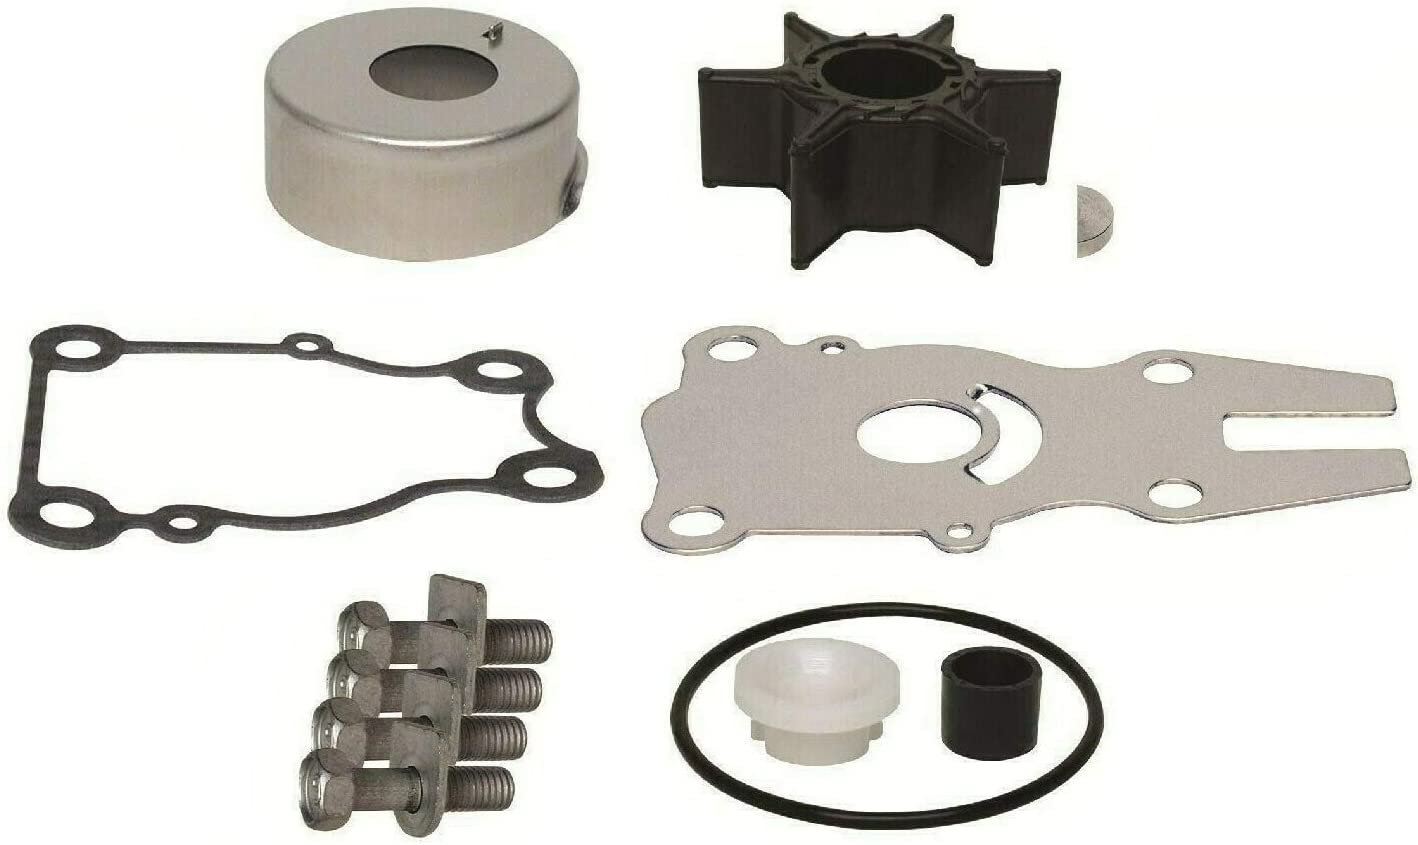 Water Pump Impeller Replacement Kit for Yamaha 63D-W0078-01-00 18-3434